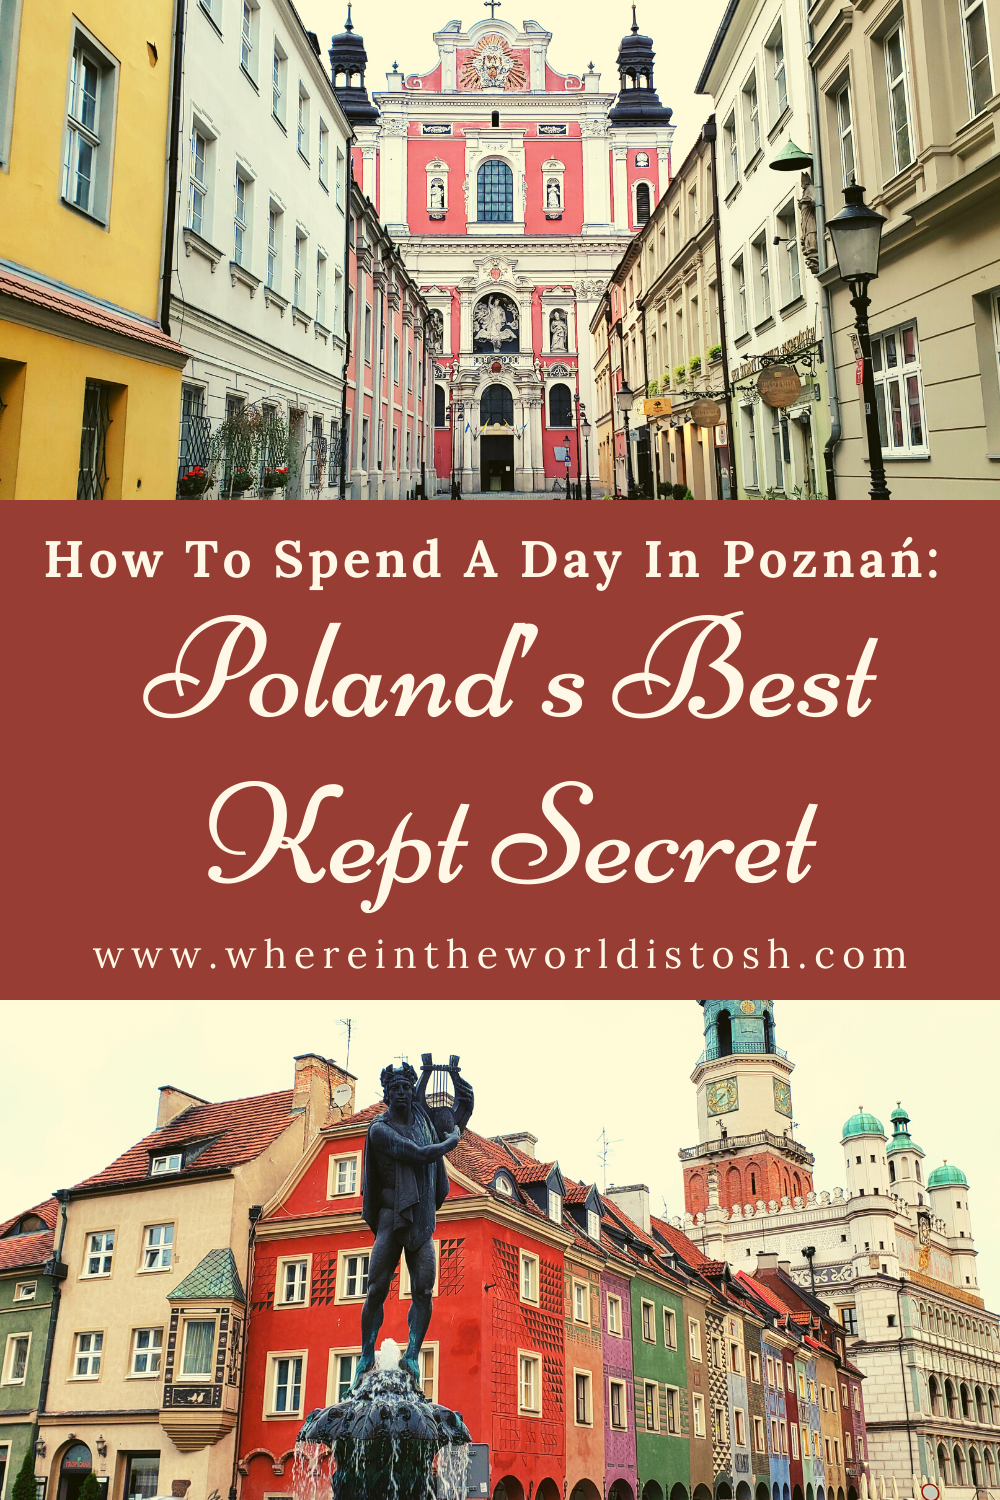 How To Spend A Day In Poznan Poland's Best Kept Secret